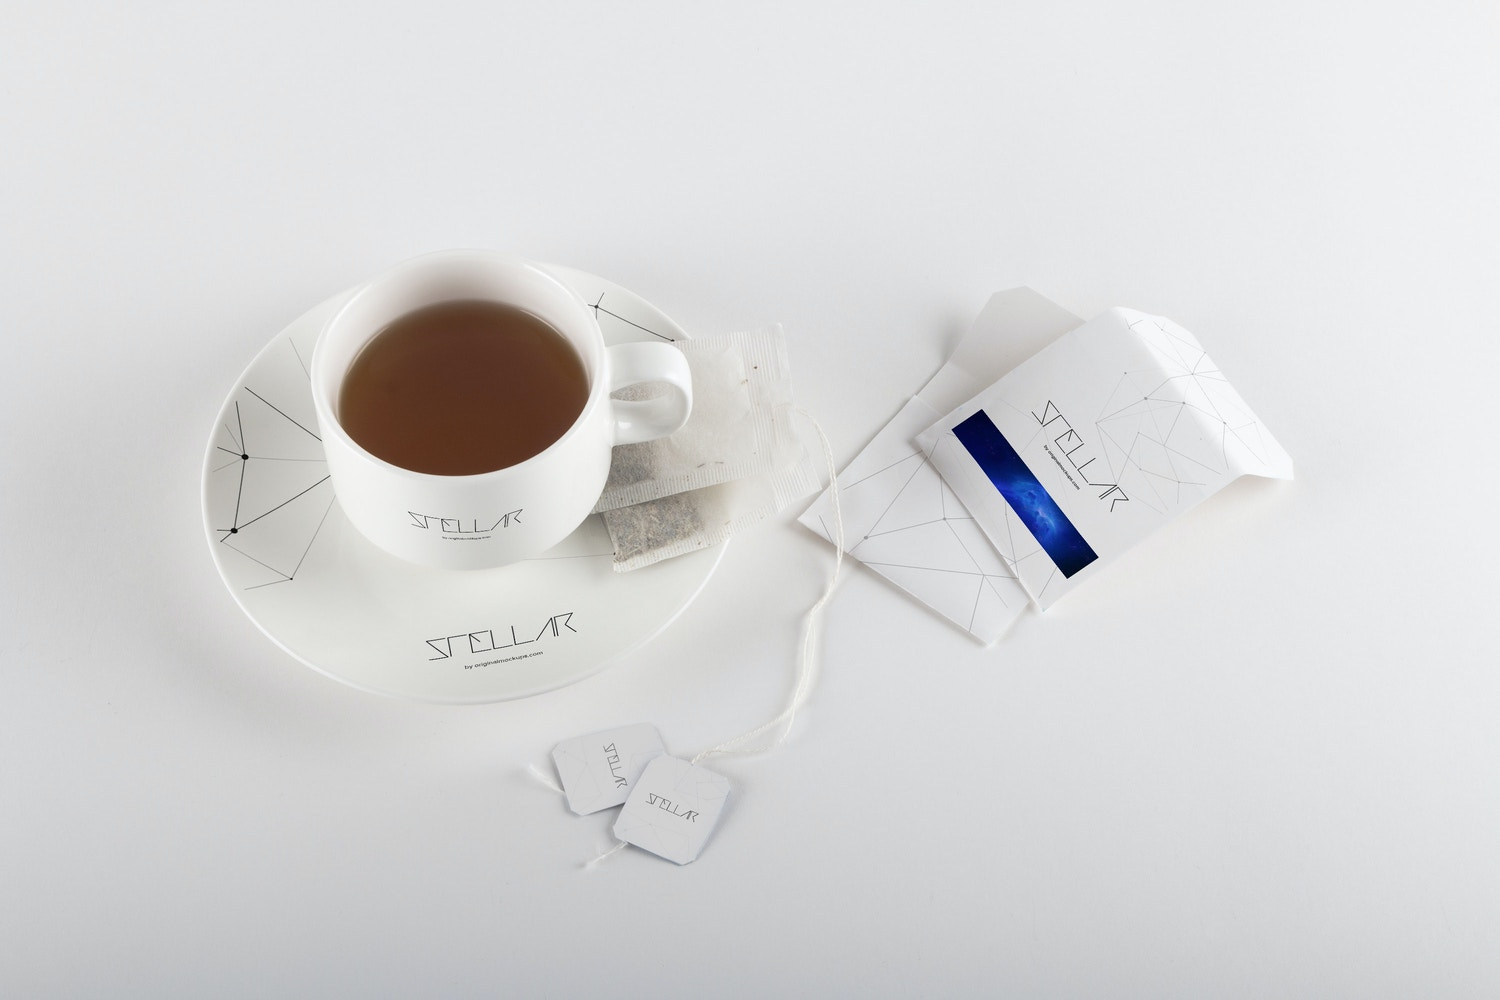 Tea cup and Tea Bags Mockup 01 by Original Mockups on Original Mockups